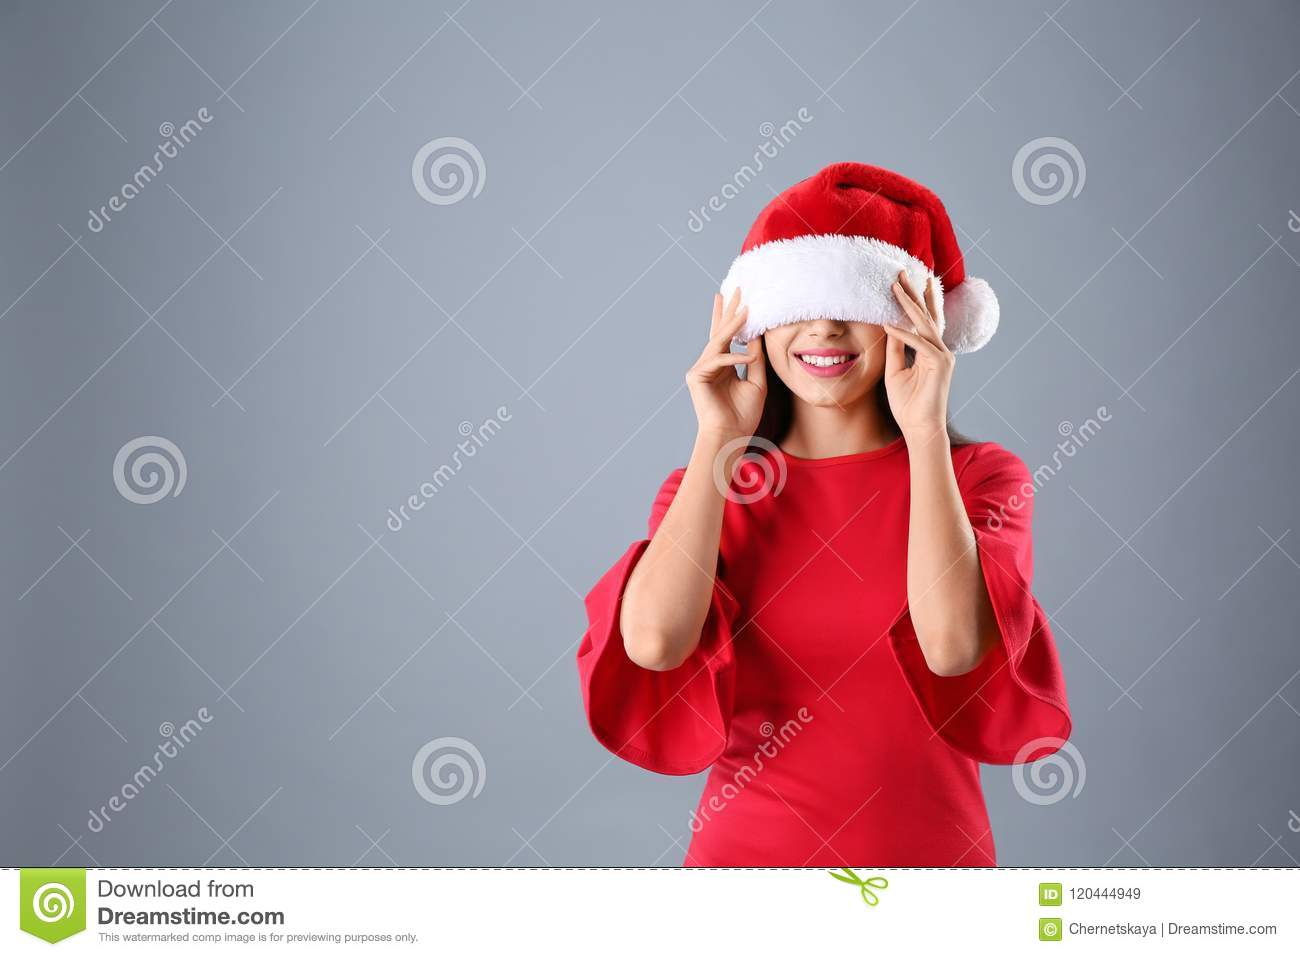 Young woman in Santa hat on grey background. Christmas celebration